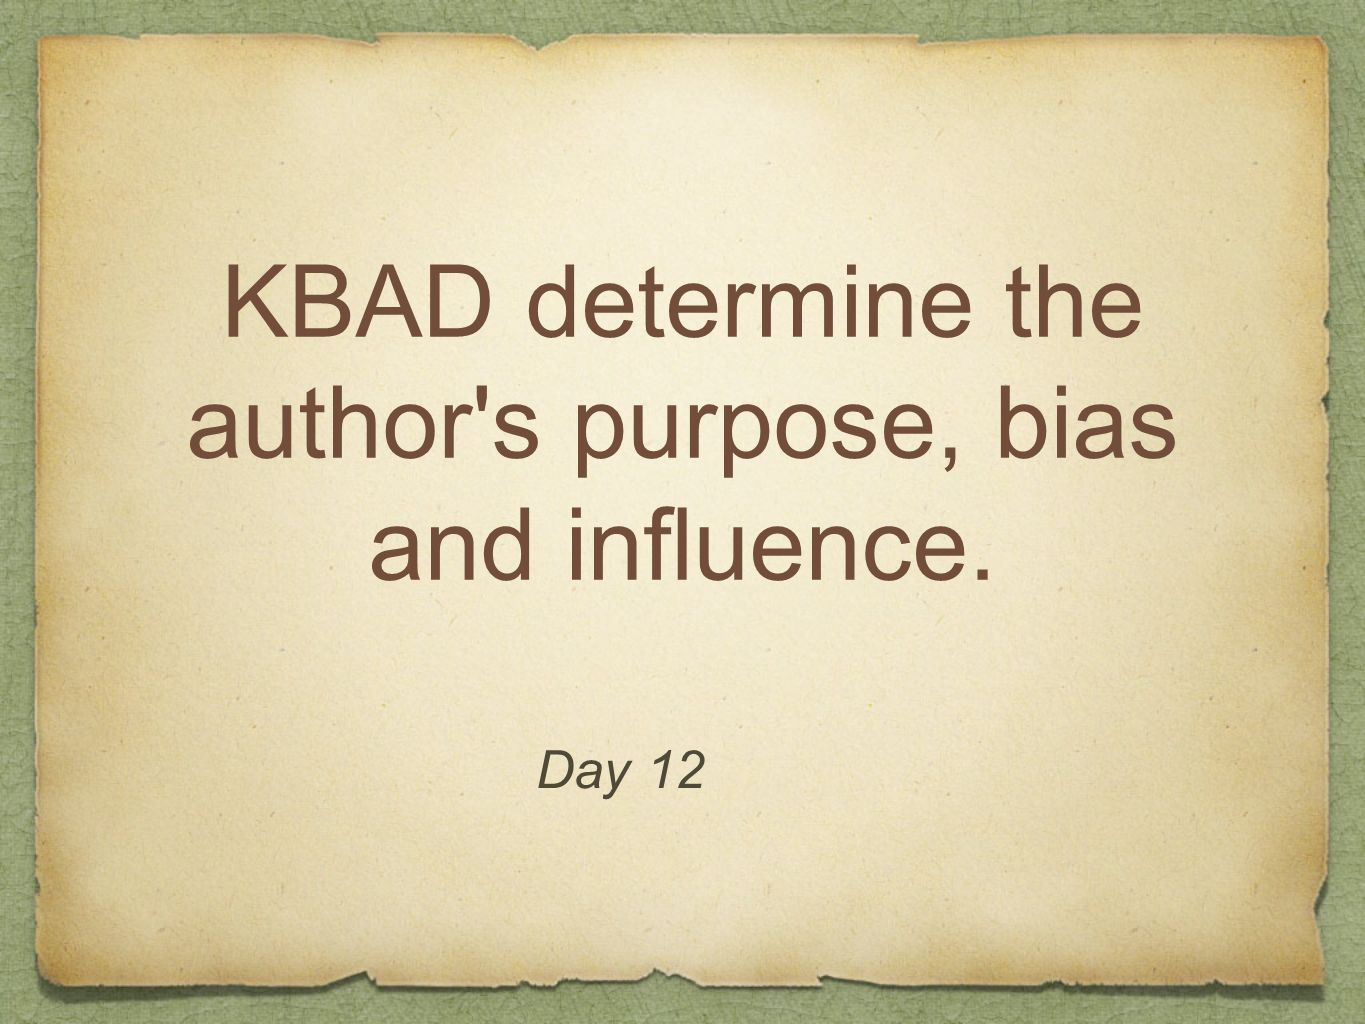 KBAD determine the author s purpose, bias and influence.